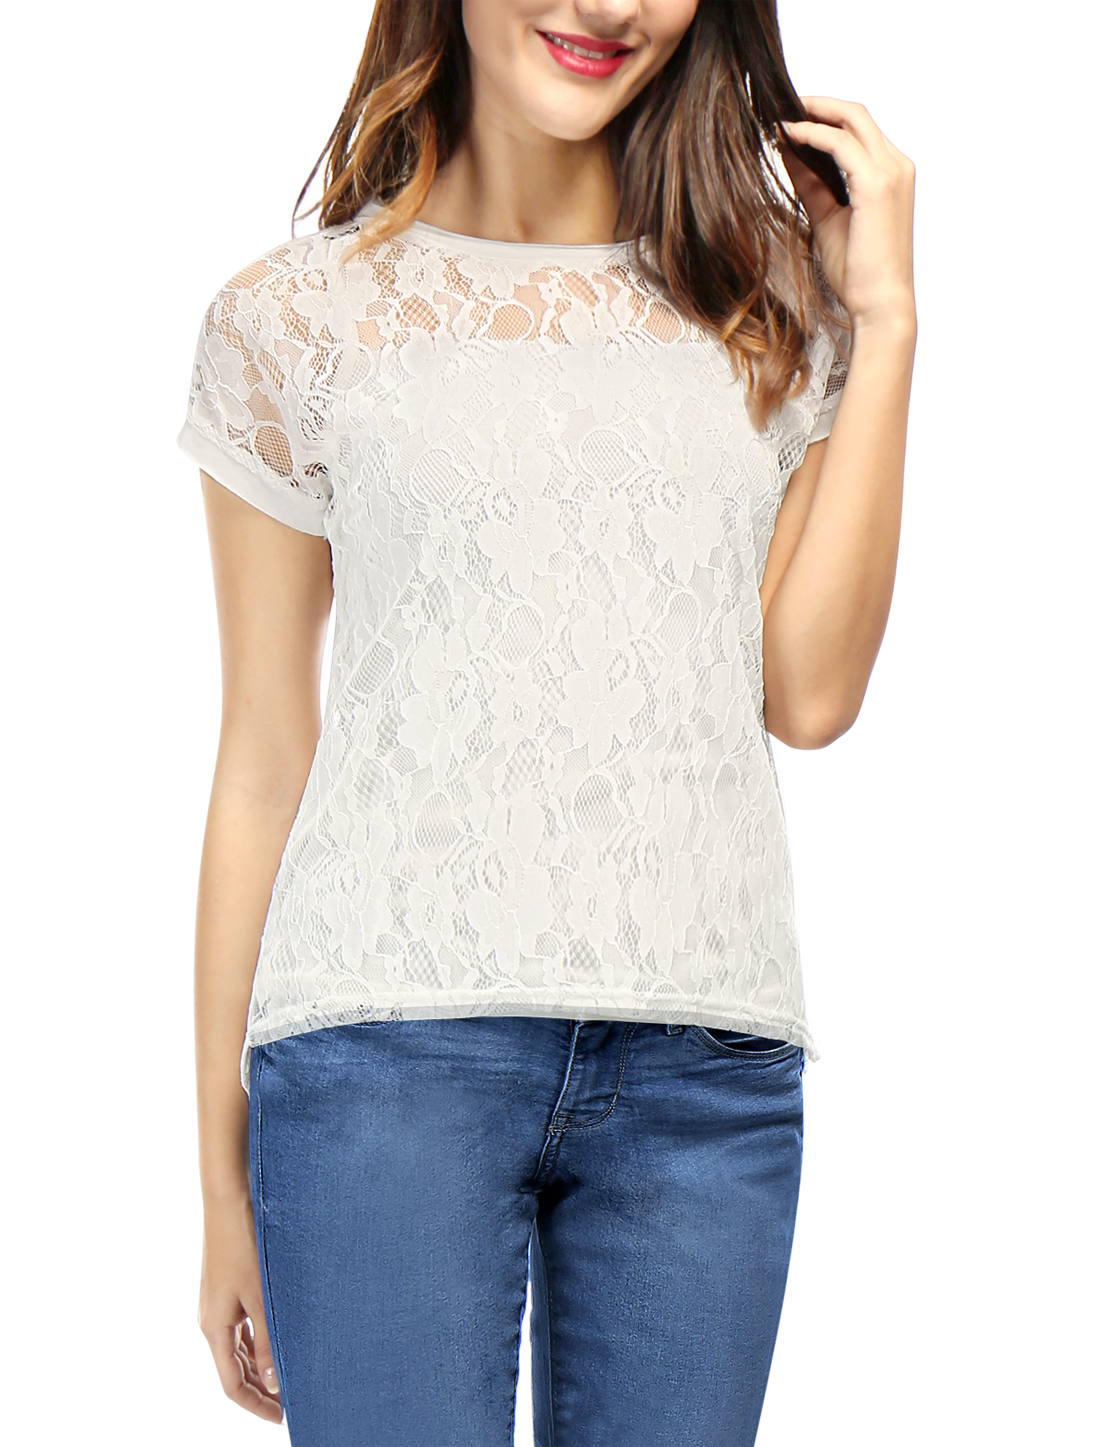 Women Curved Hem Sheer Short Sleeves Floral Lace Top White XL